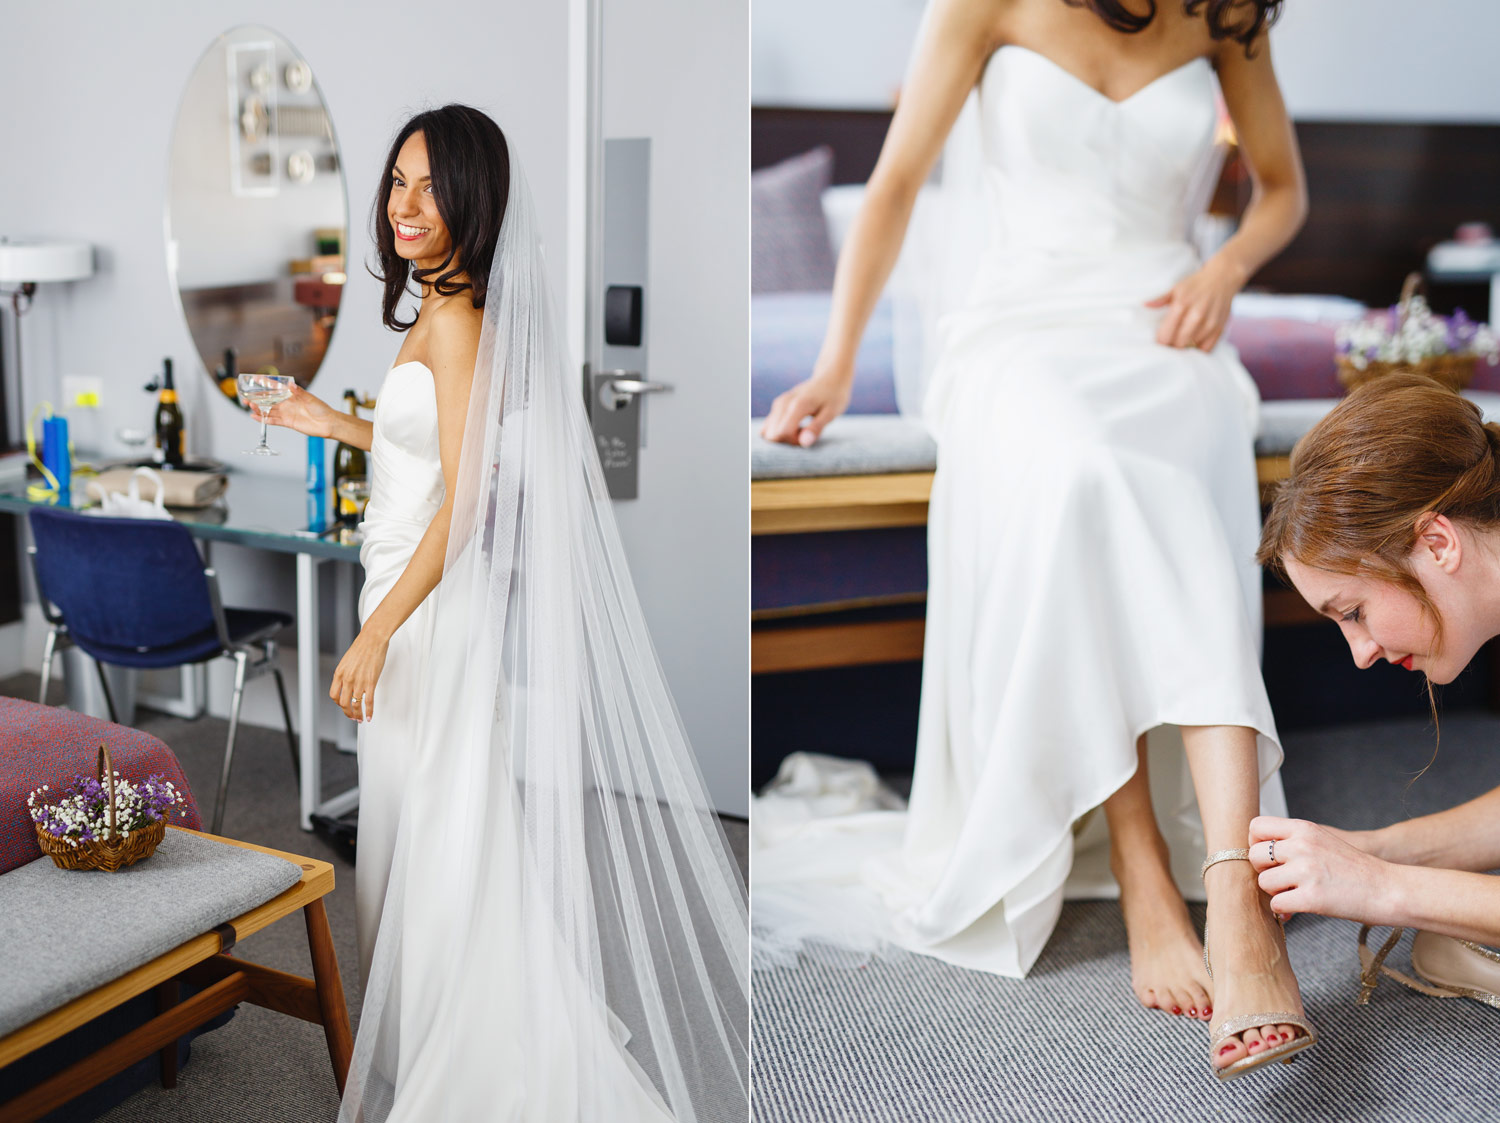 A bride puts on her wedding shoes at The Laslett Hotel in London - wedding photographer